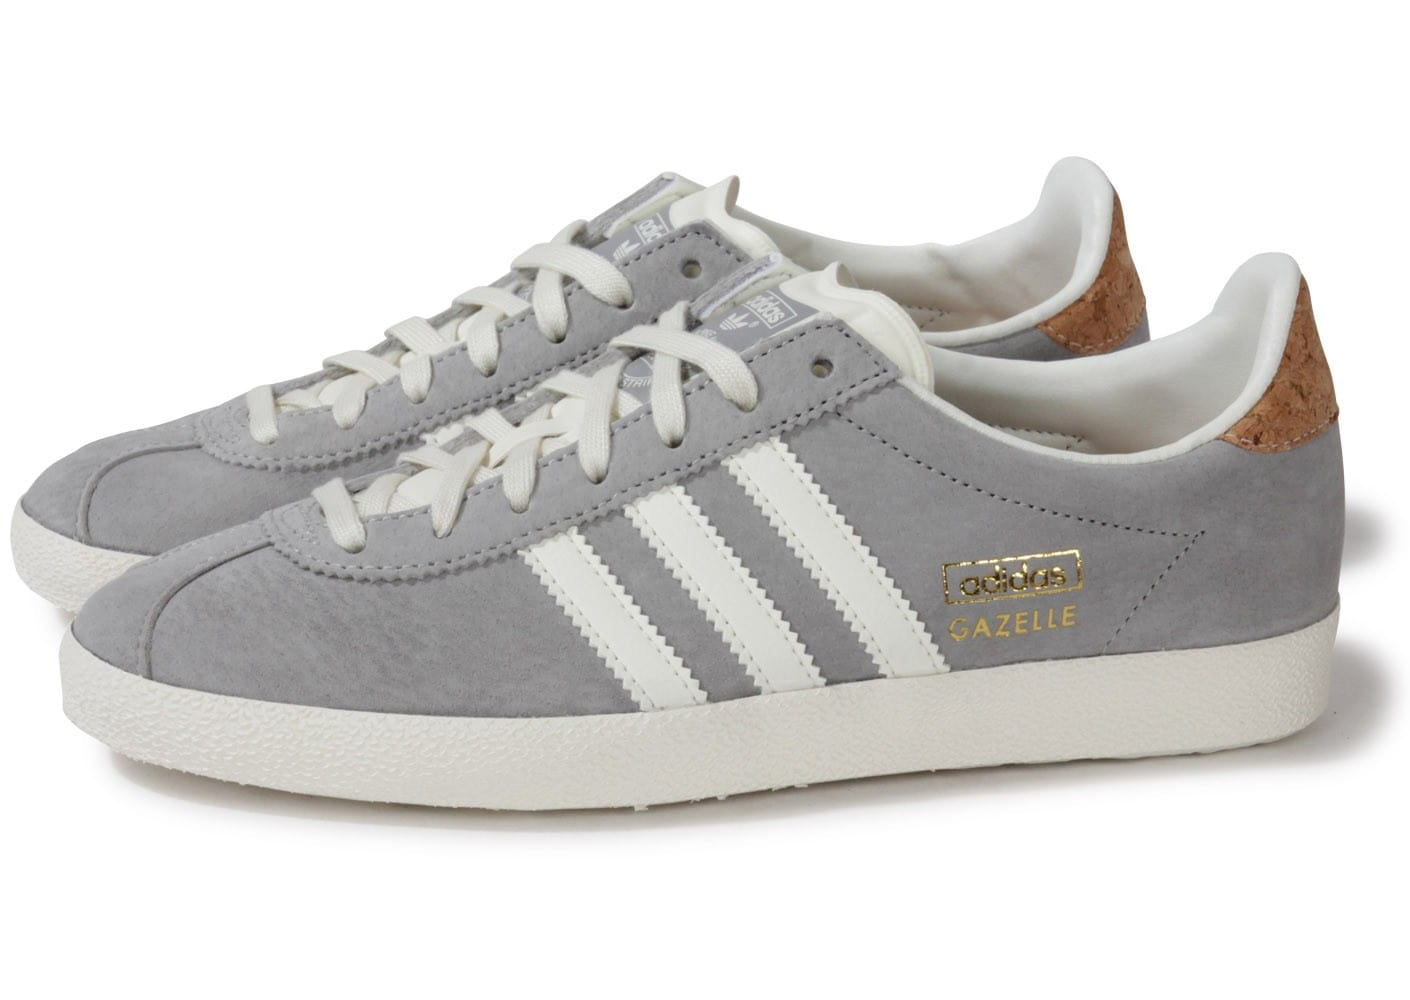 grande vente a0718 ca5be adidas Gazelle Og Grise - Chaussures adidas - Chausport